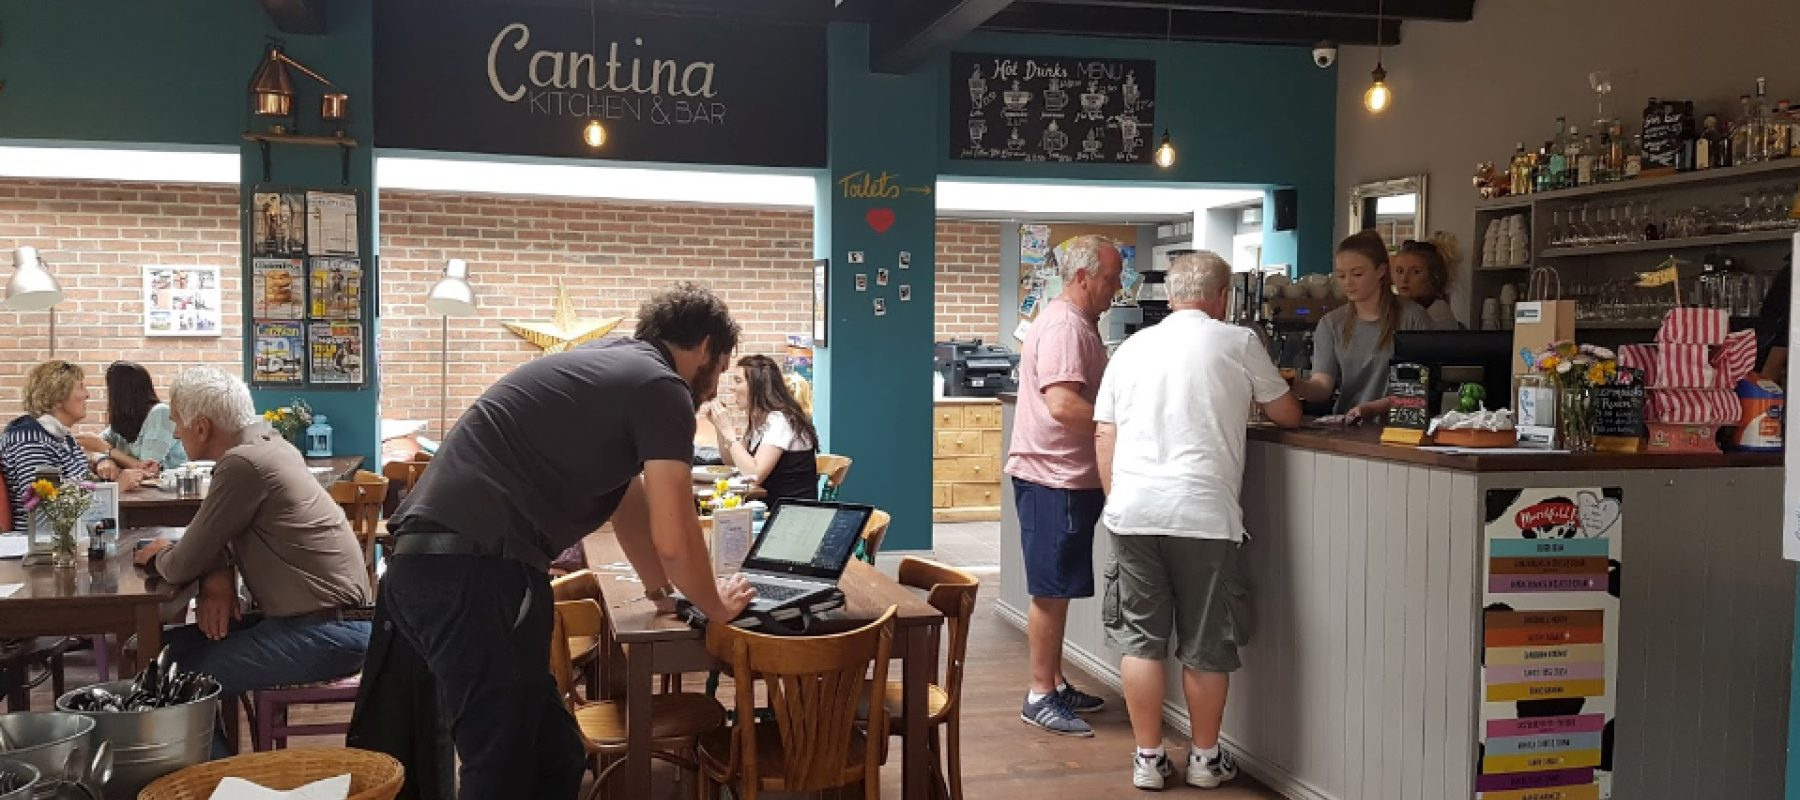 Cantina Kitchen & Bar: The Client Story